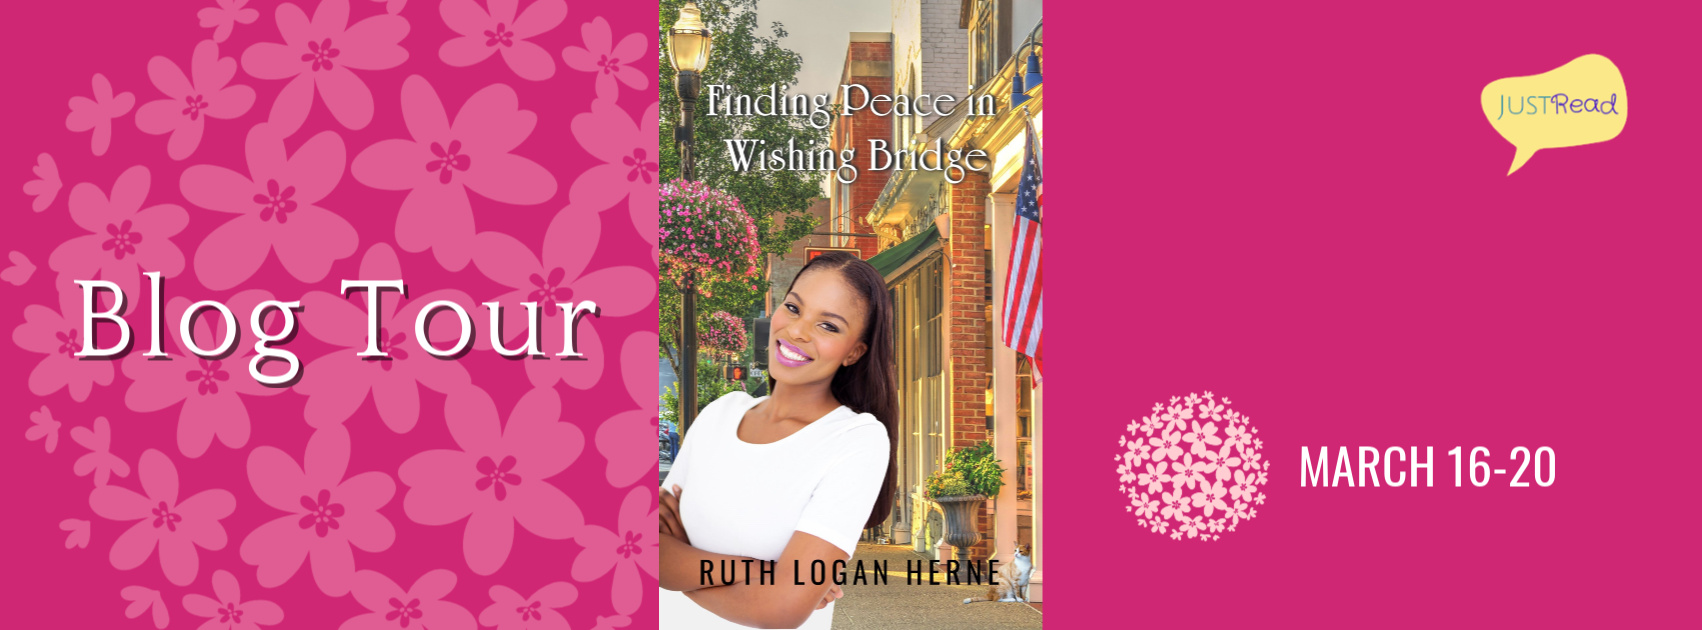 Welcome to the Finding Peace in Wishing Bridge Blog Tour & Giveaway!